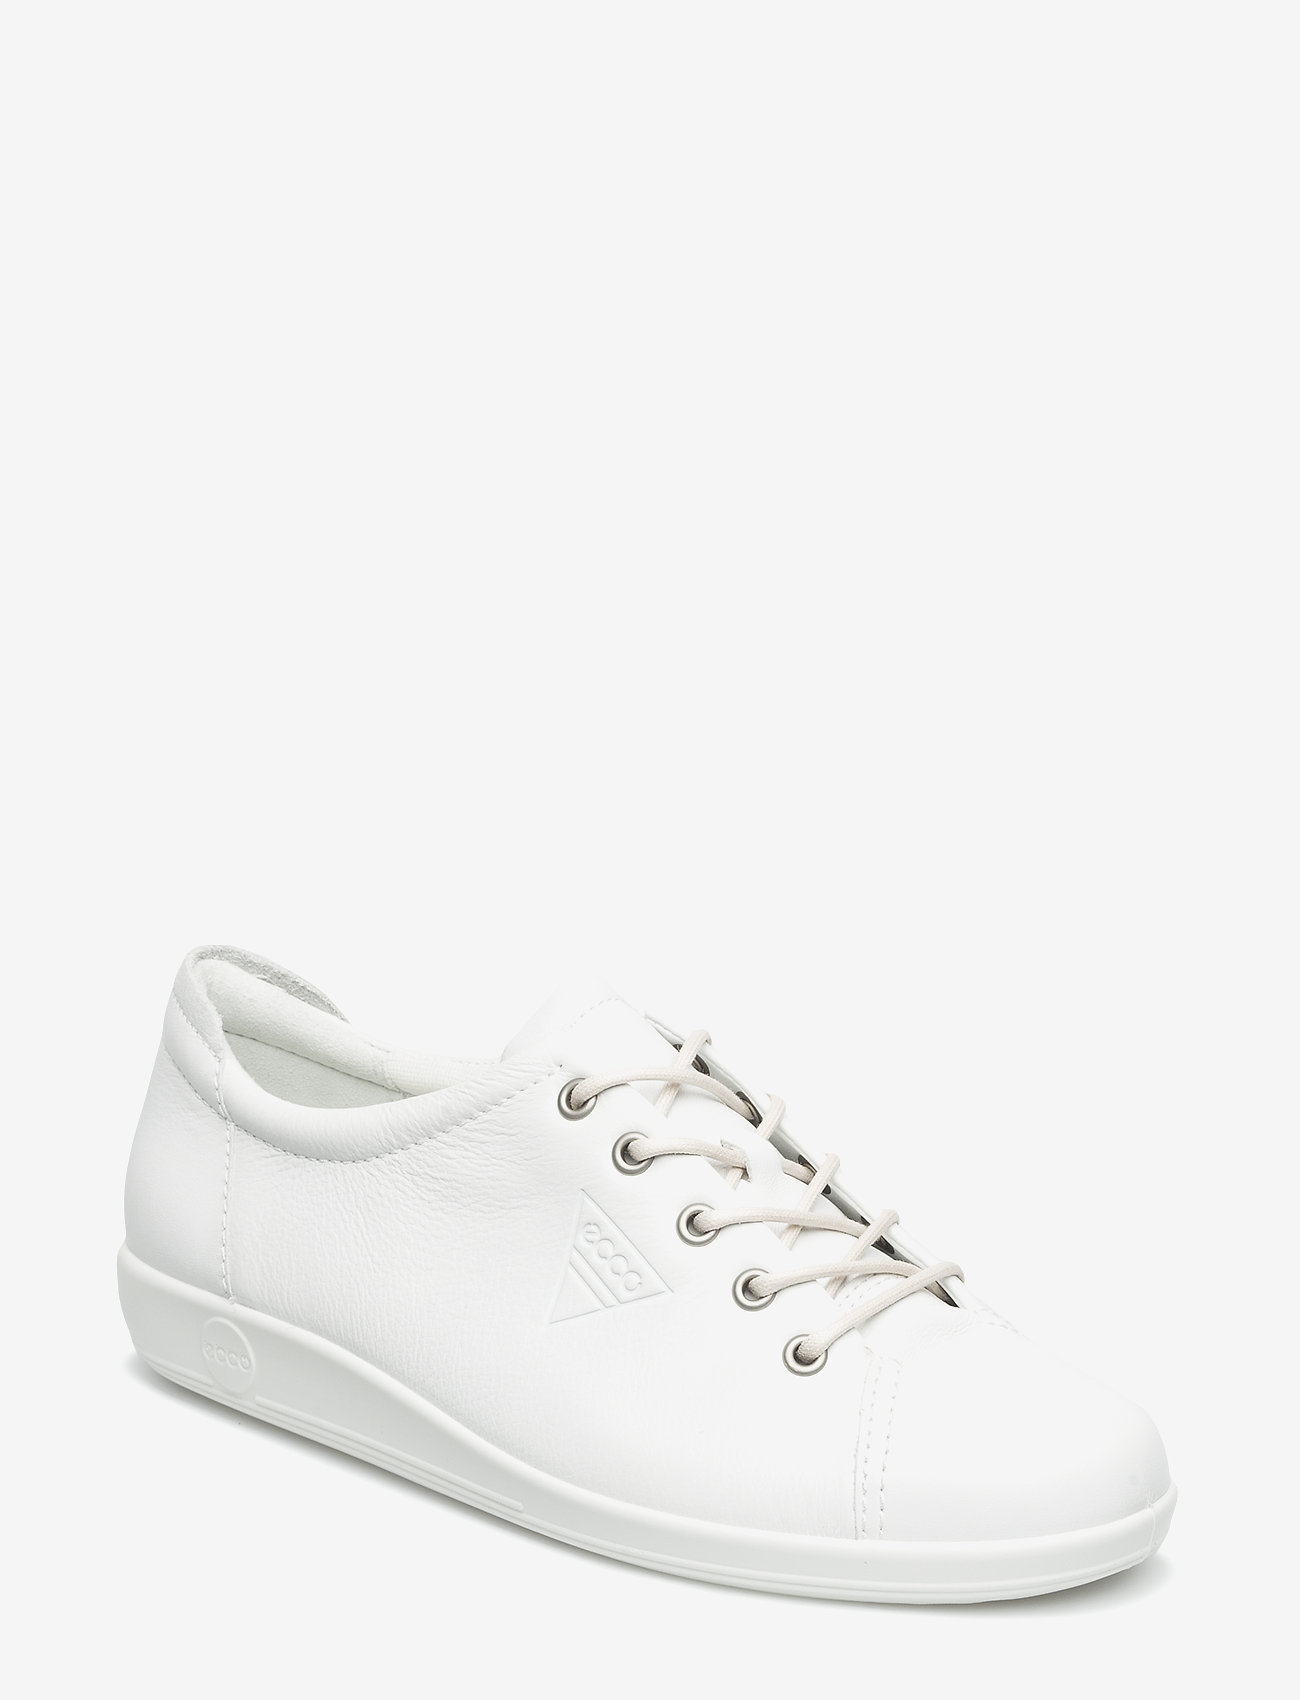 ECCO - SOFT 2.0 - lave sneakers - white - 0